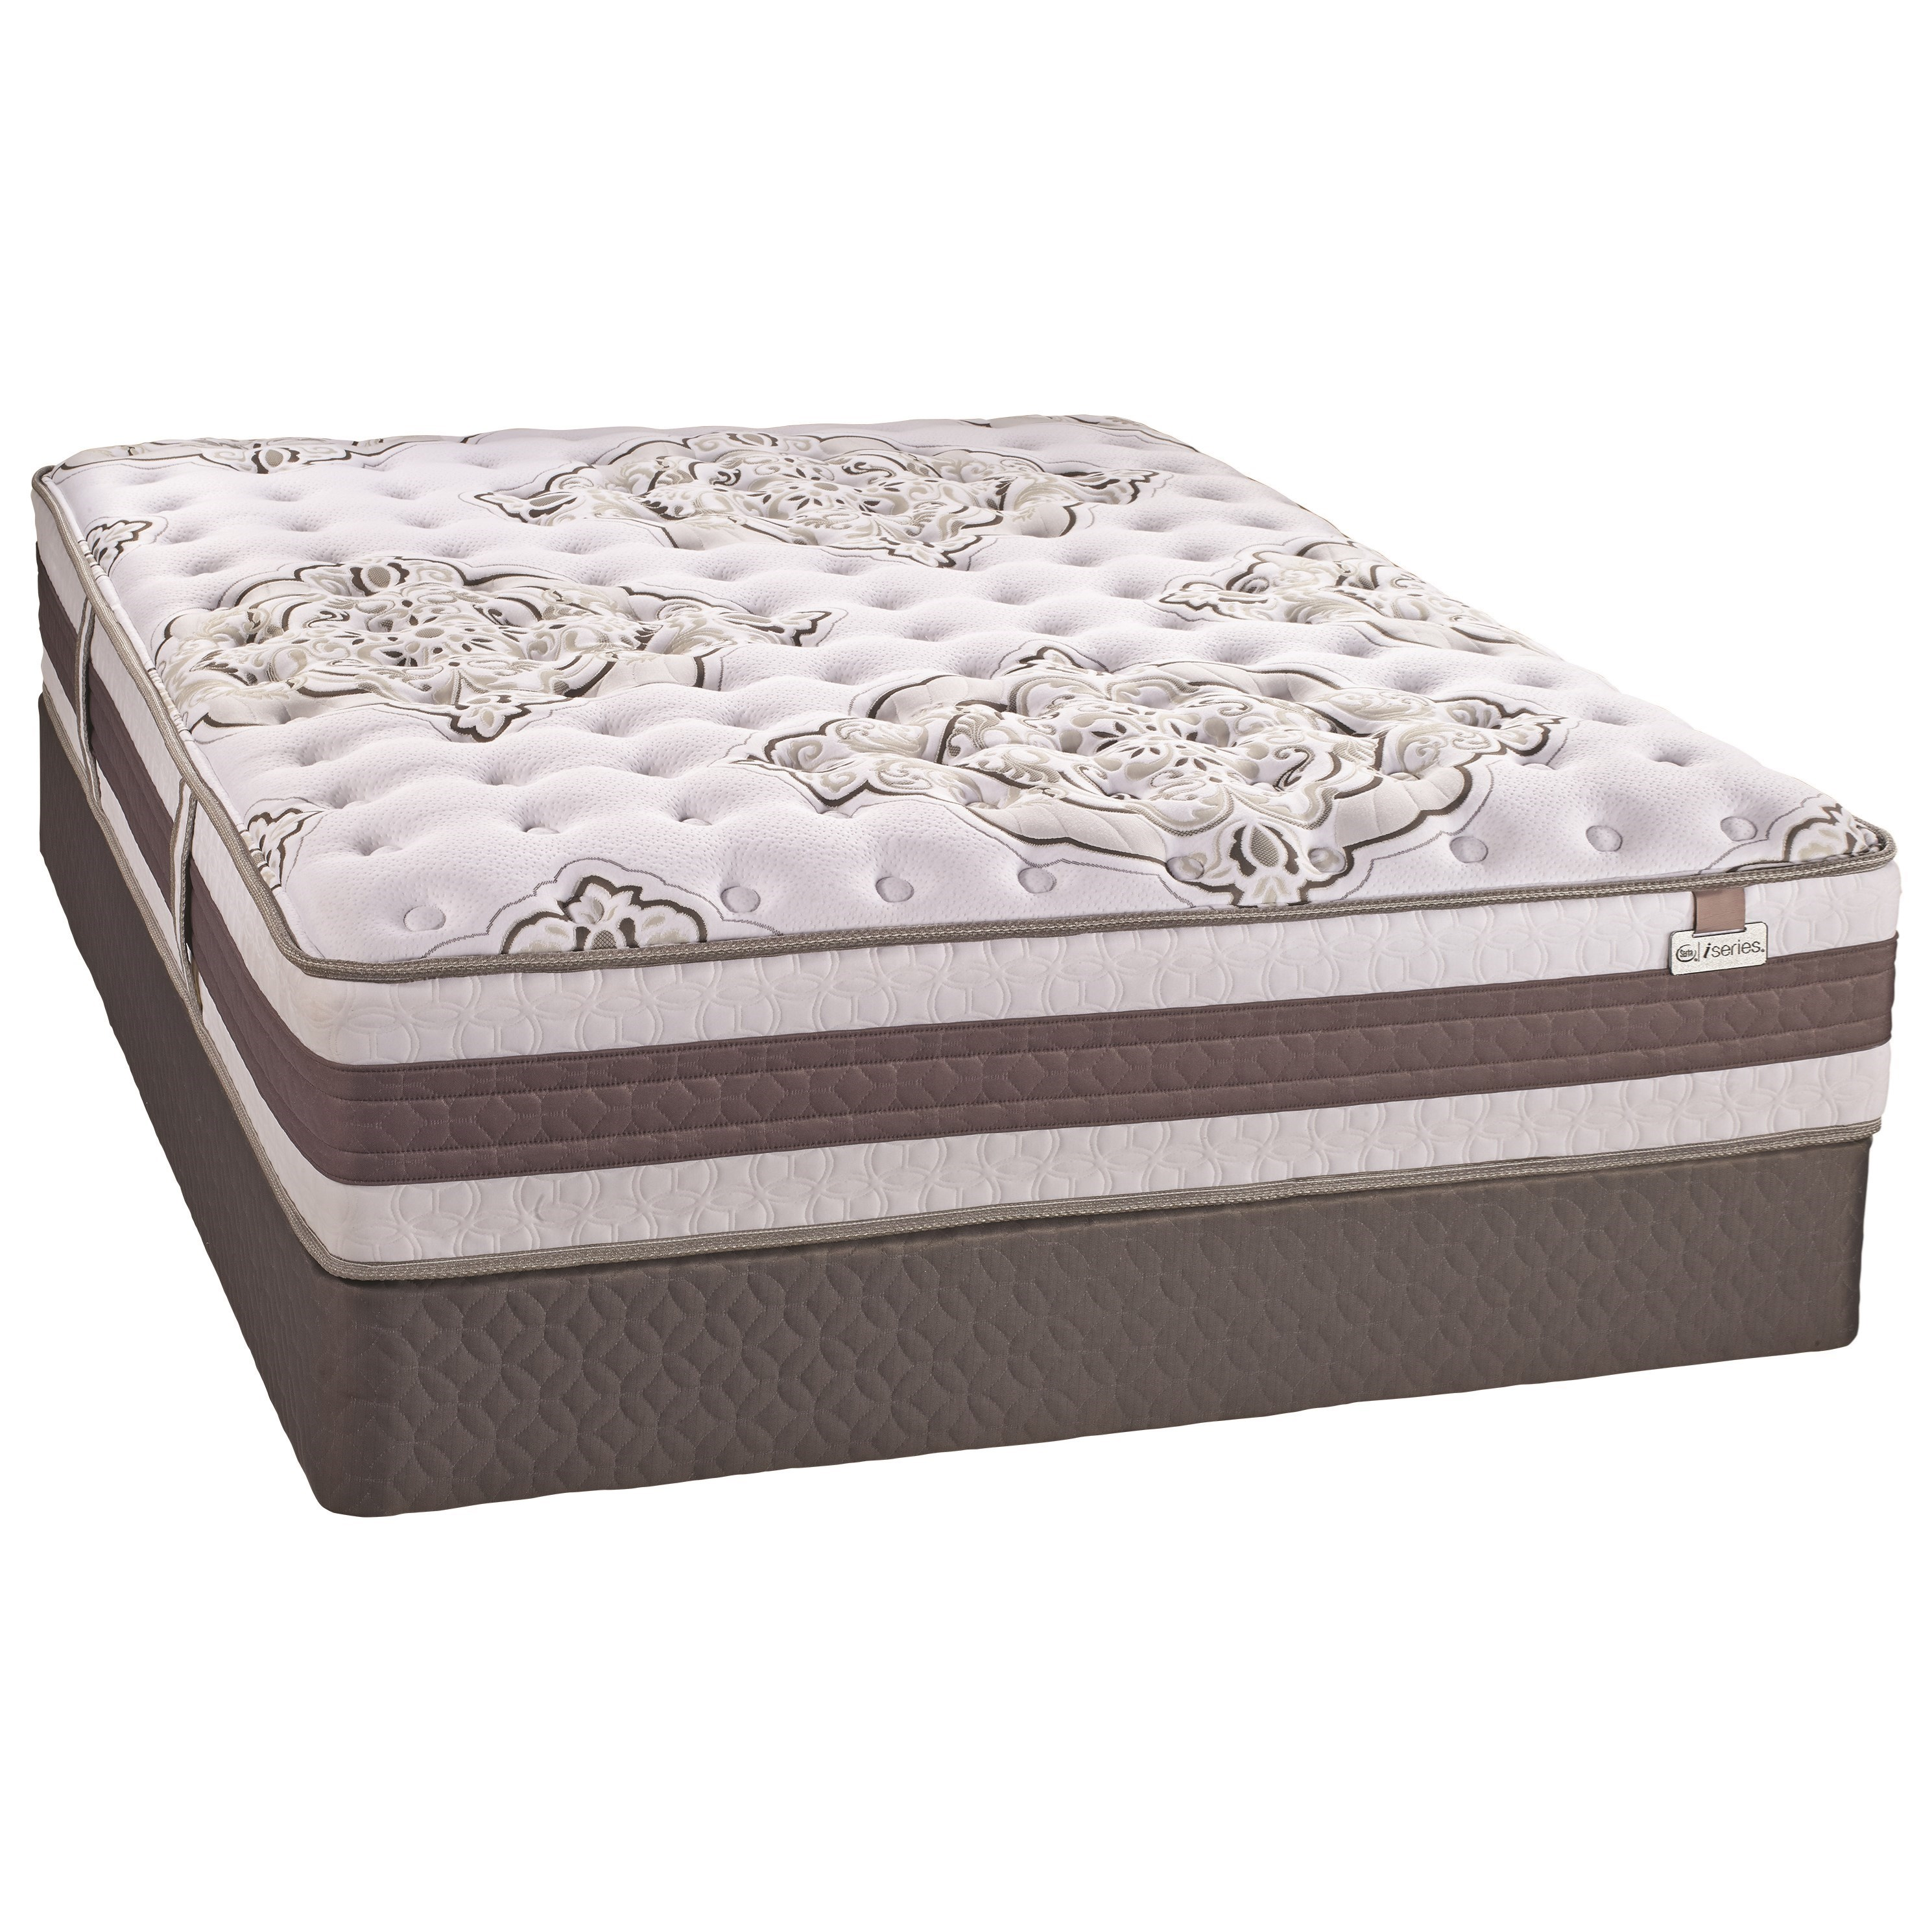 full free faircrest shipping today overstock product garden mattress home size set serta